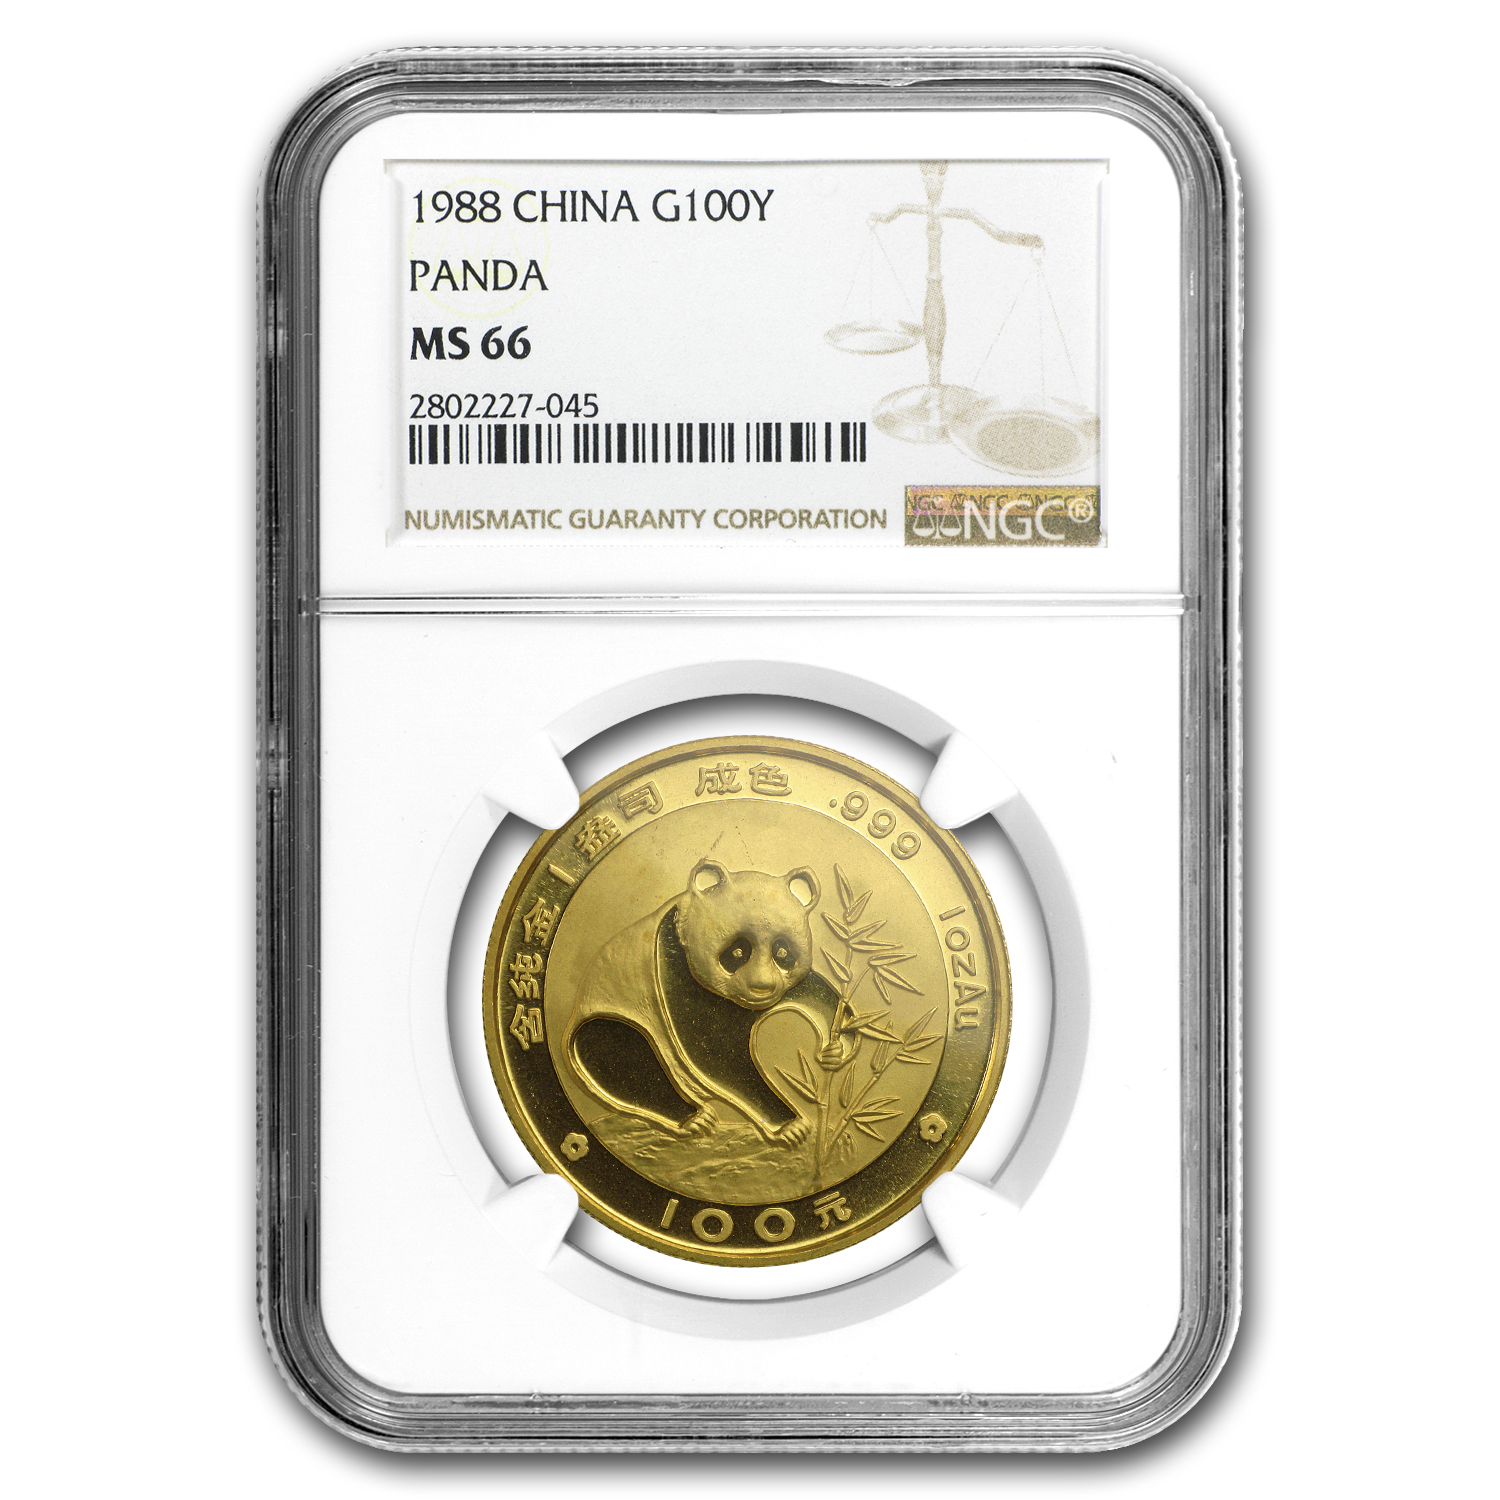 1988 China 1 oz Gold Panda MS-66 NGC